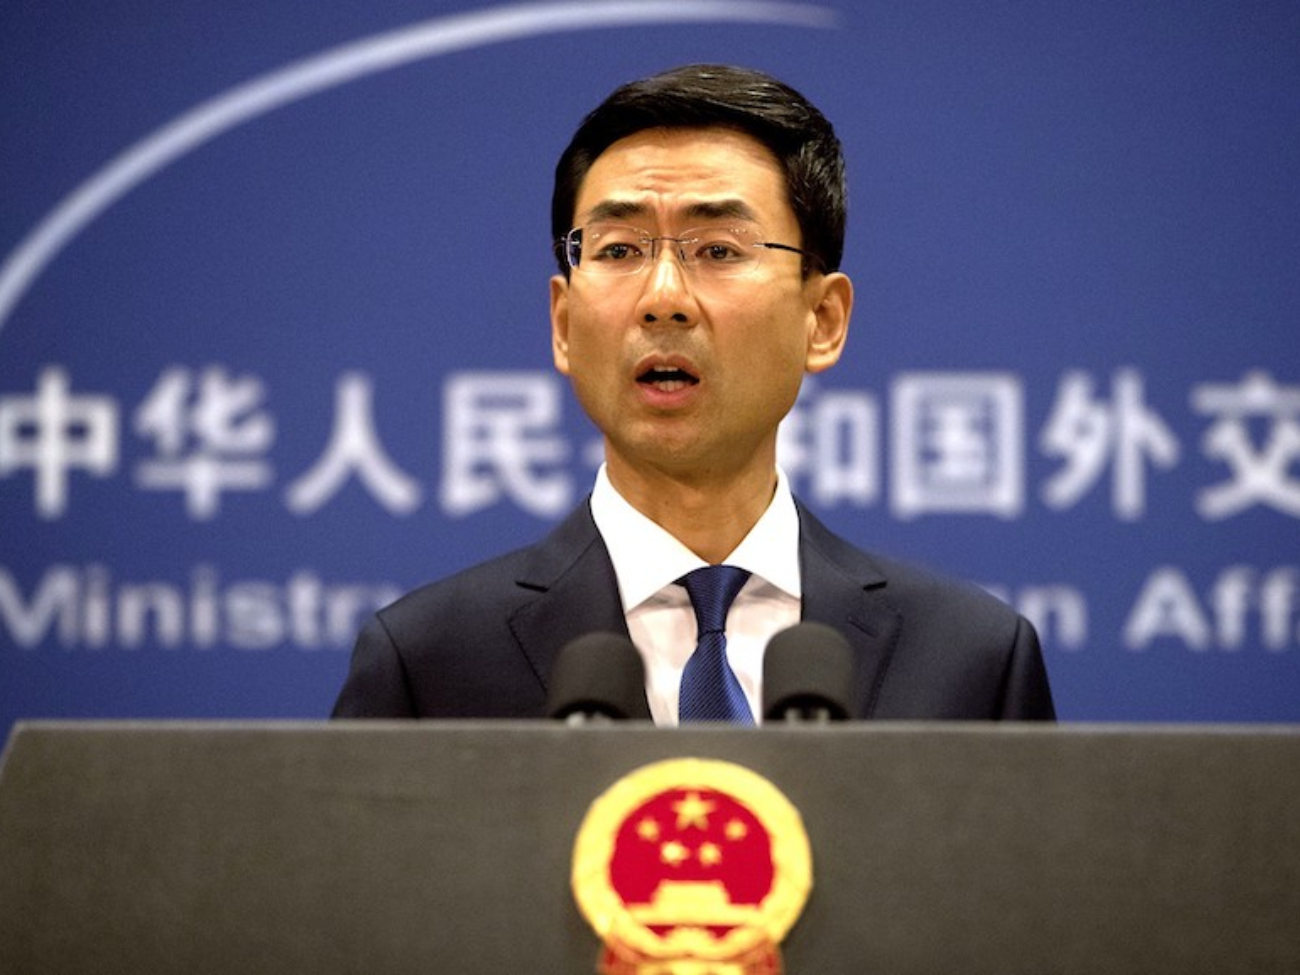 China refutes US accusation of cyber theft of trade secrets